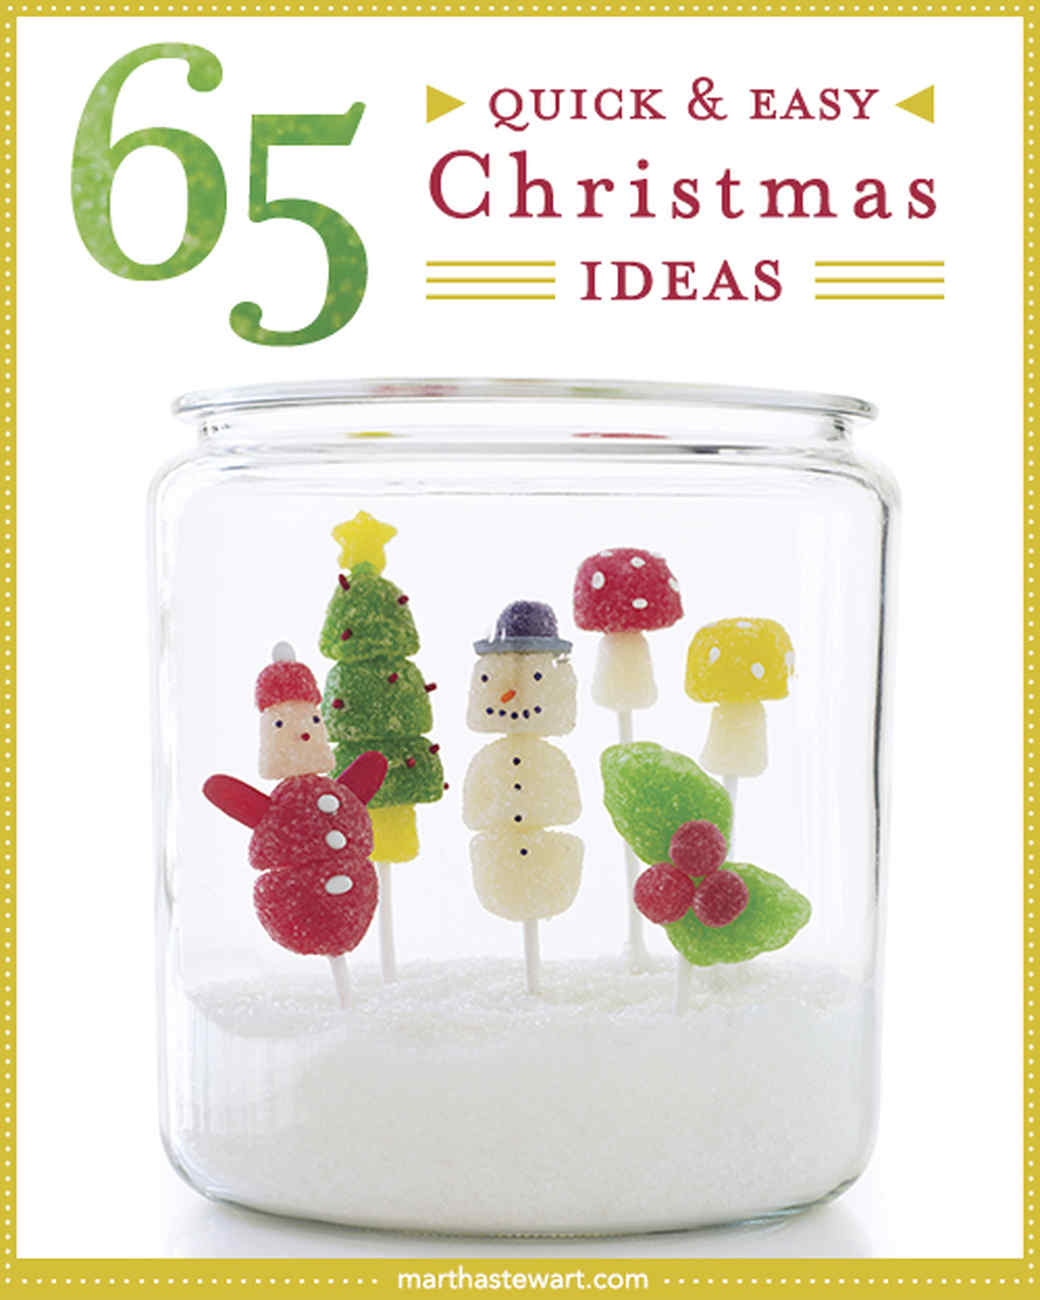 65-quick-and-easy-christmas-ideas-1214.jpg